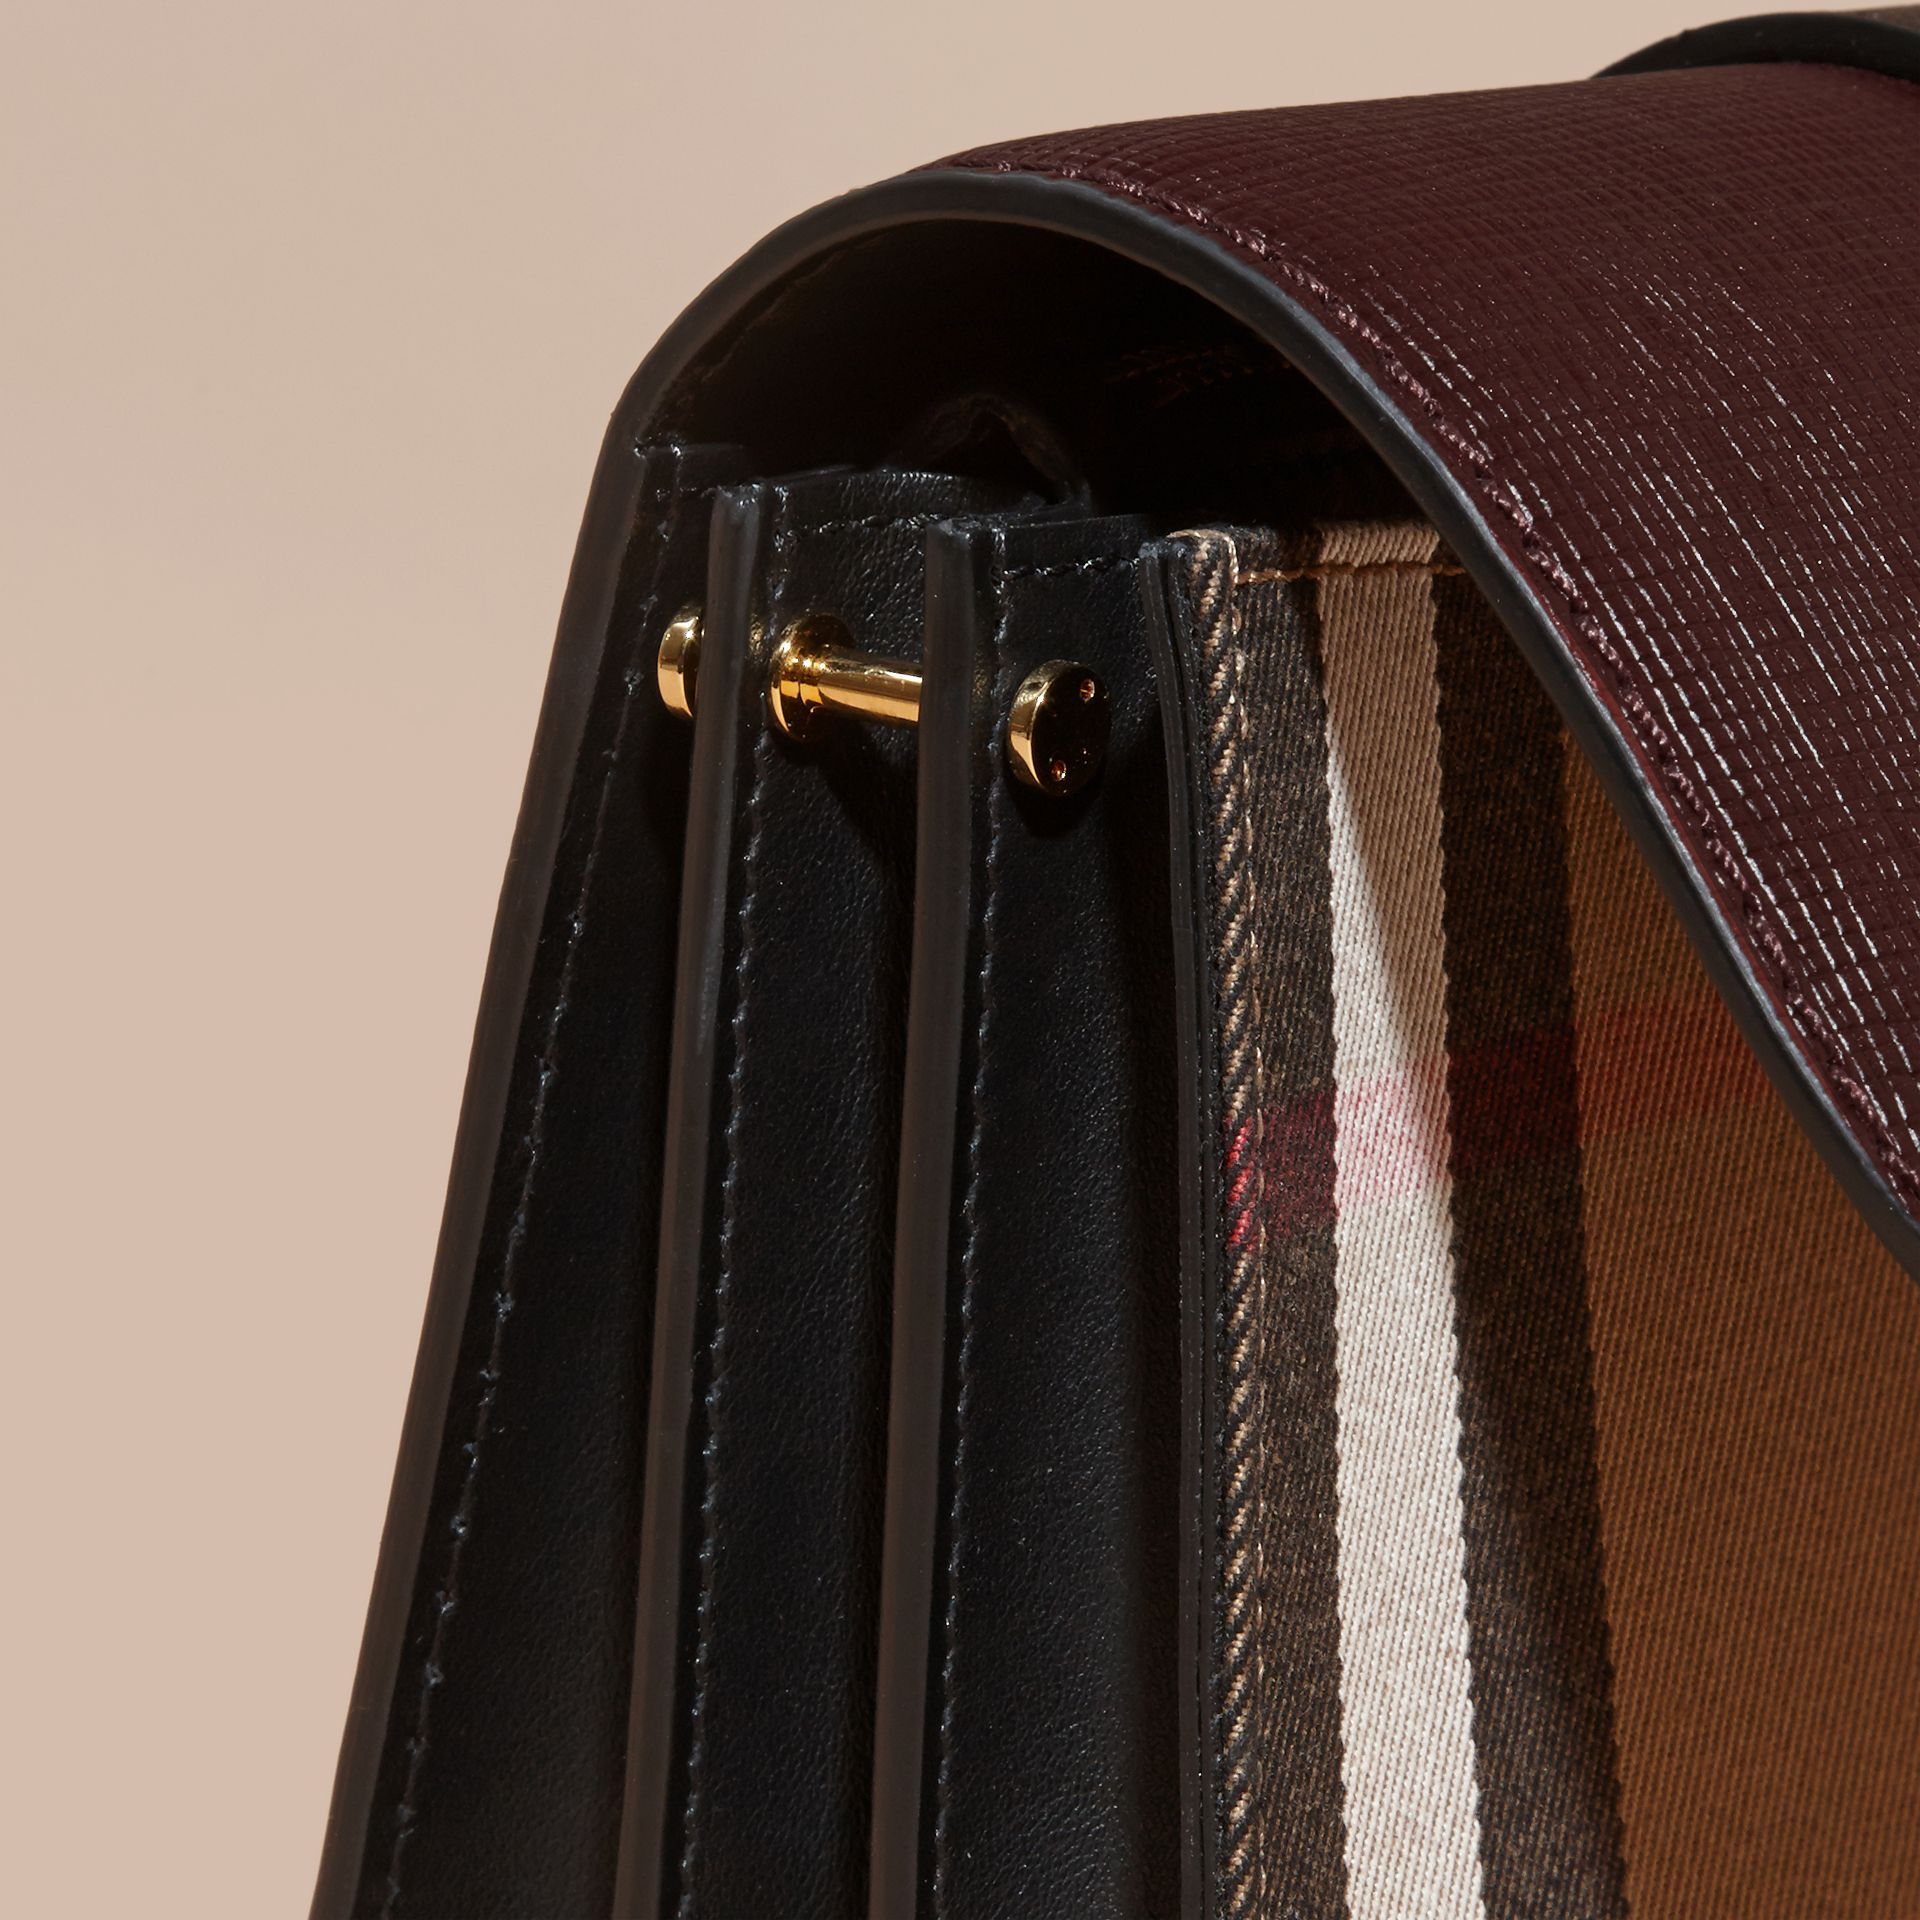 Burgundy/black The Medium Buckle Bag in House Check and Textured Leather Burgundy/black - gallery image 7